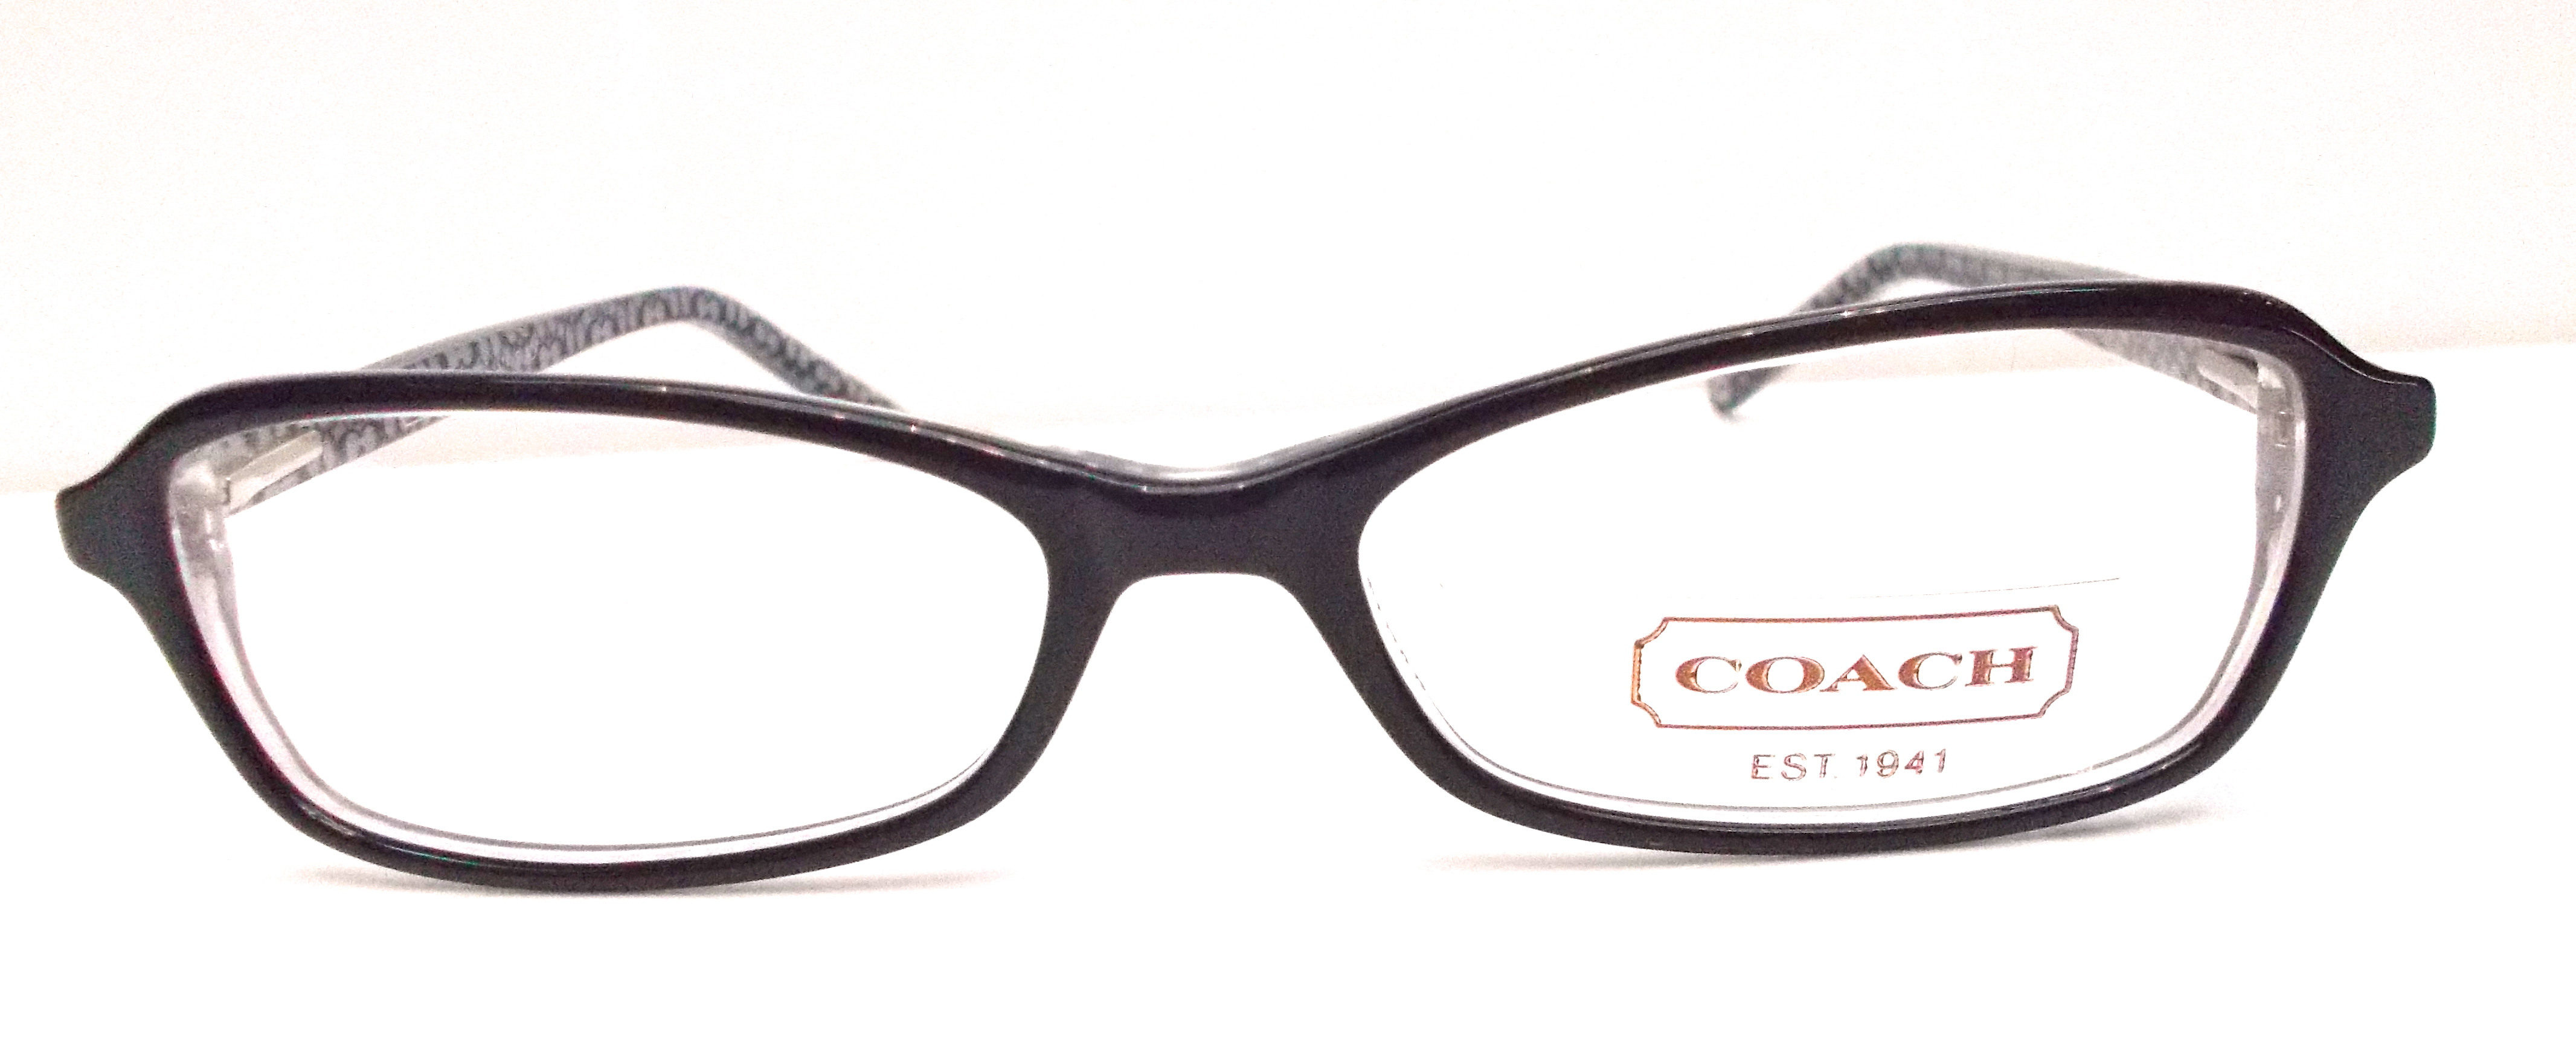 H&S Optical Coach Eyeglasses Lizzie (514) Black Online ...